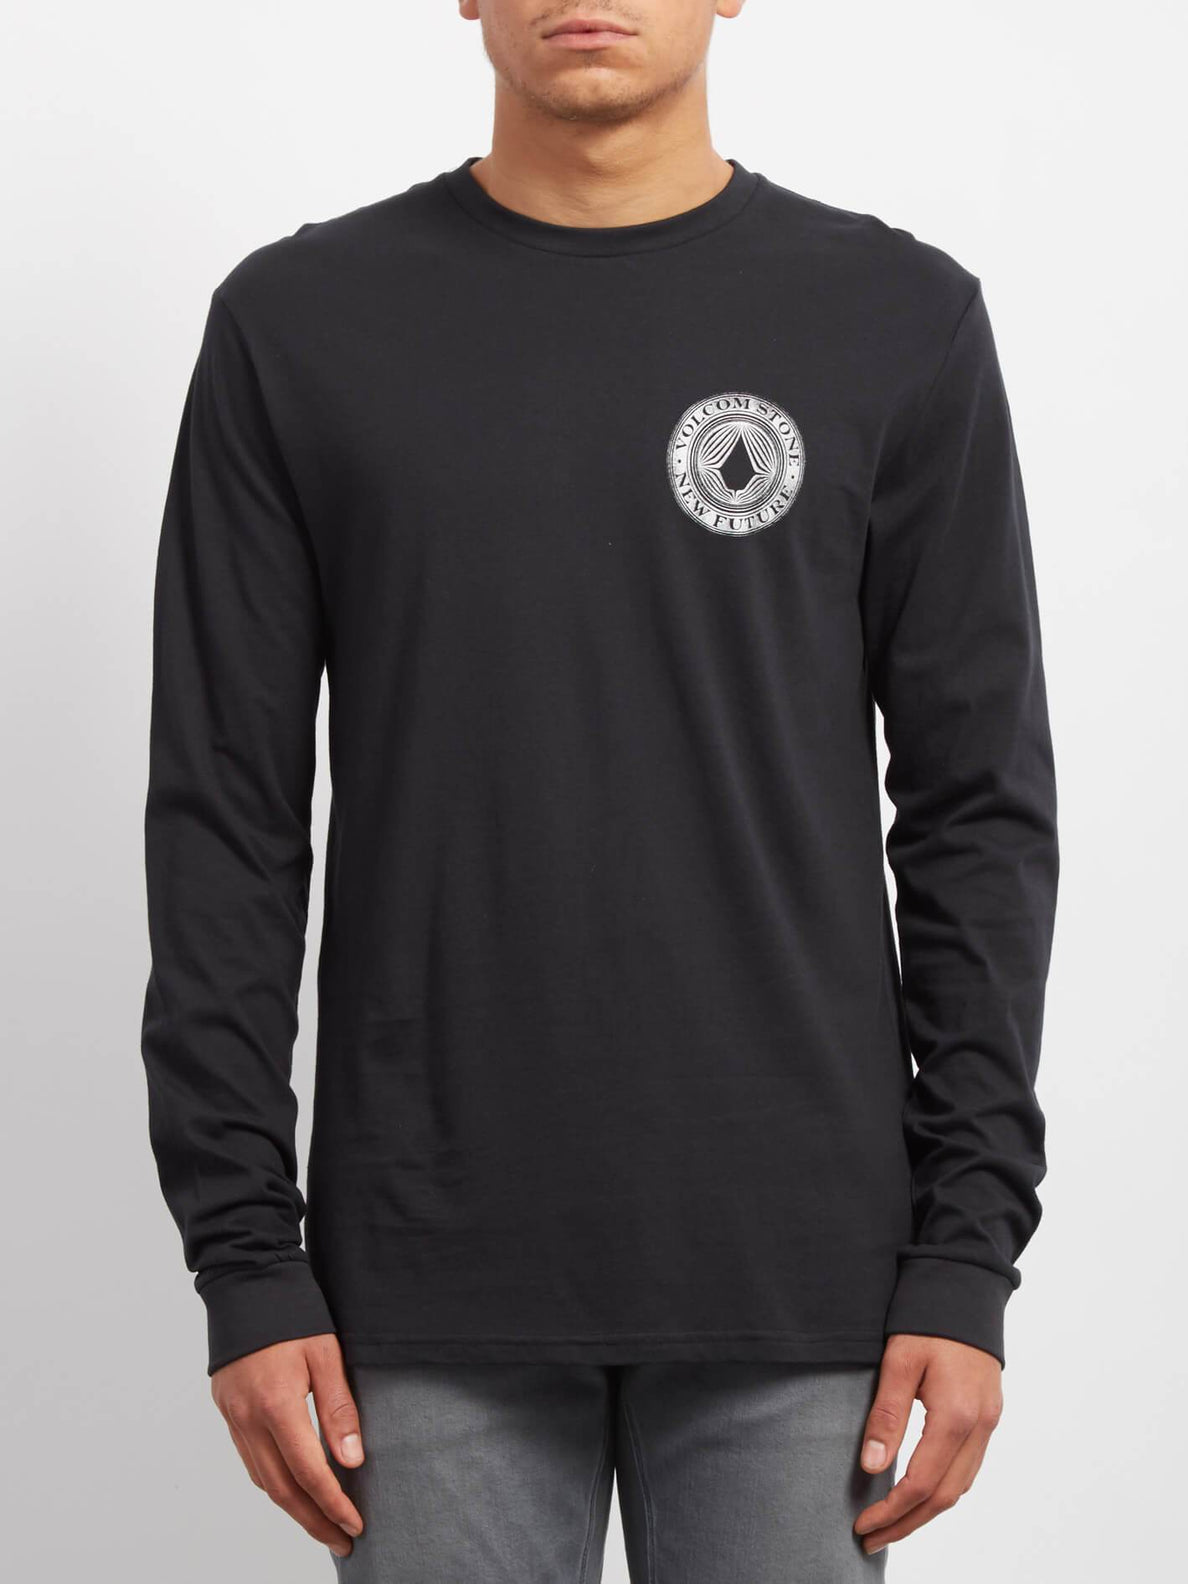 Black All Sizes Volcom Volcomsphere Basic Mens T-shirt Long Sleeve